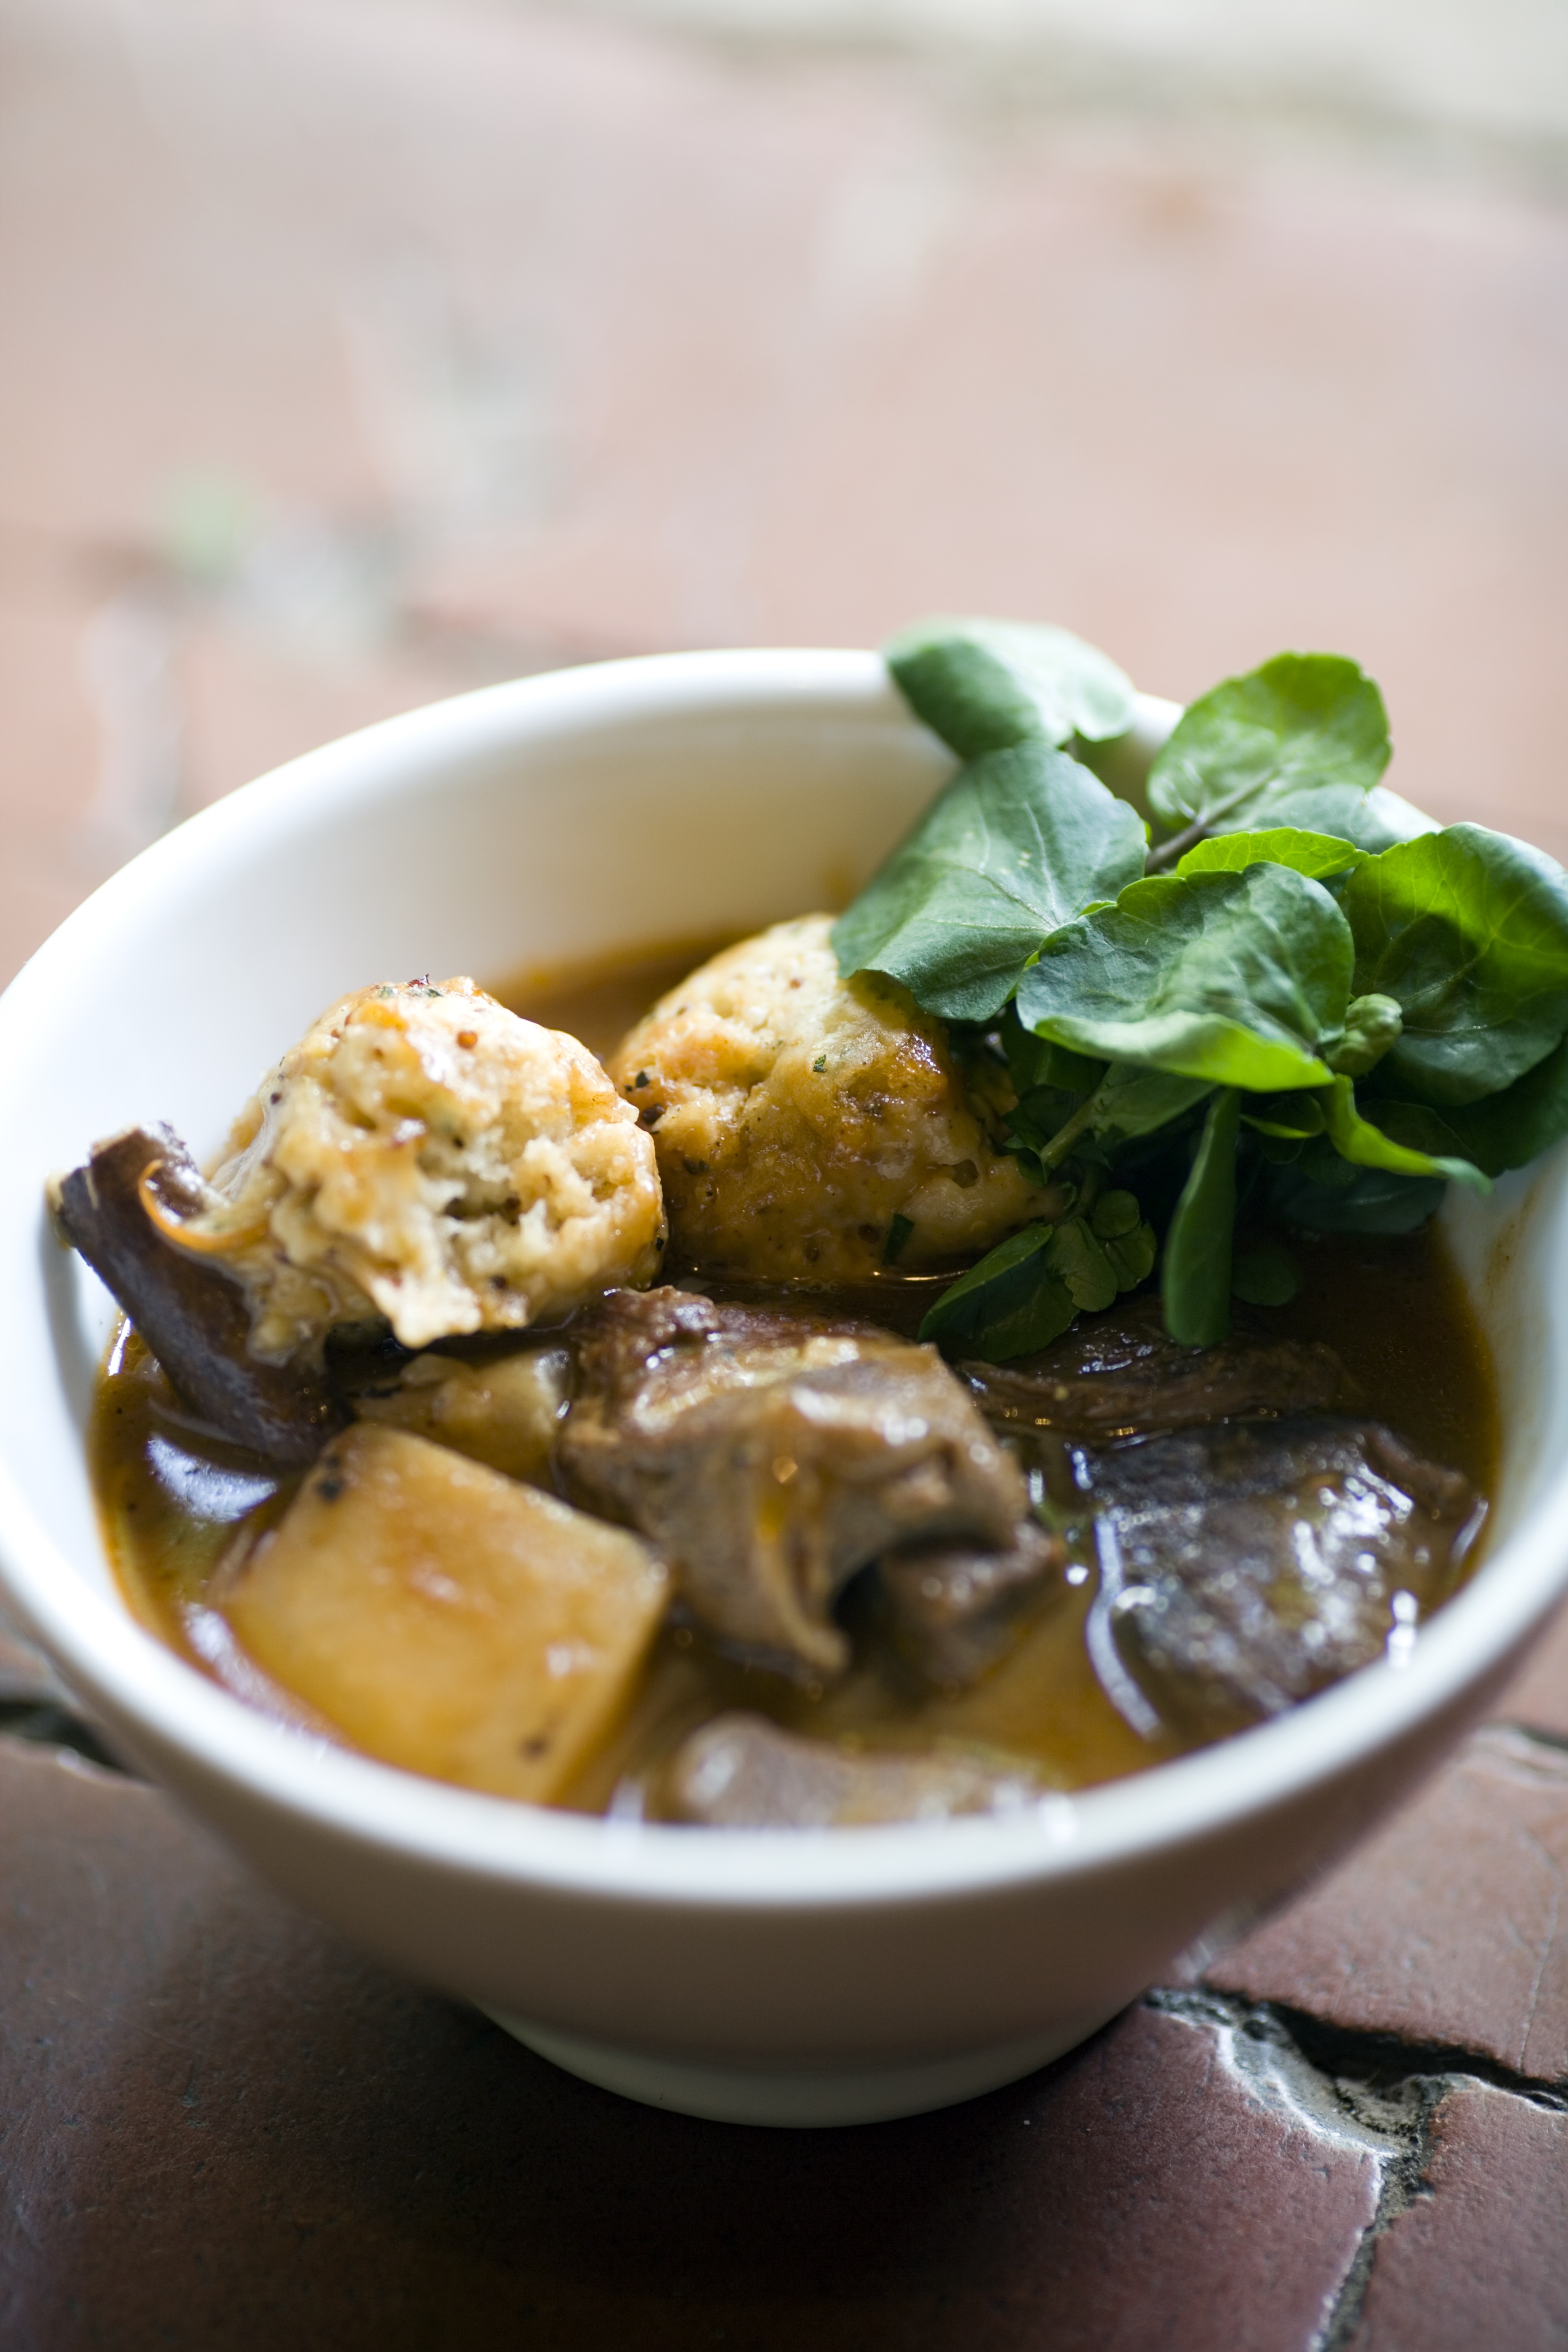 Venison casserole with tarragon juniper dumplings